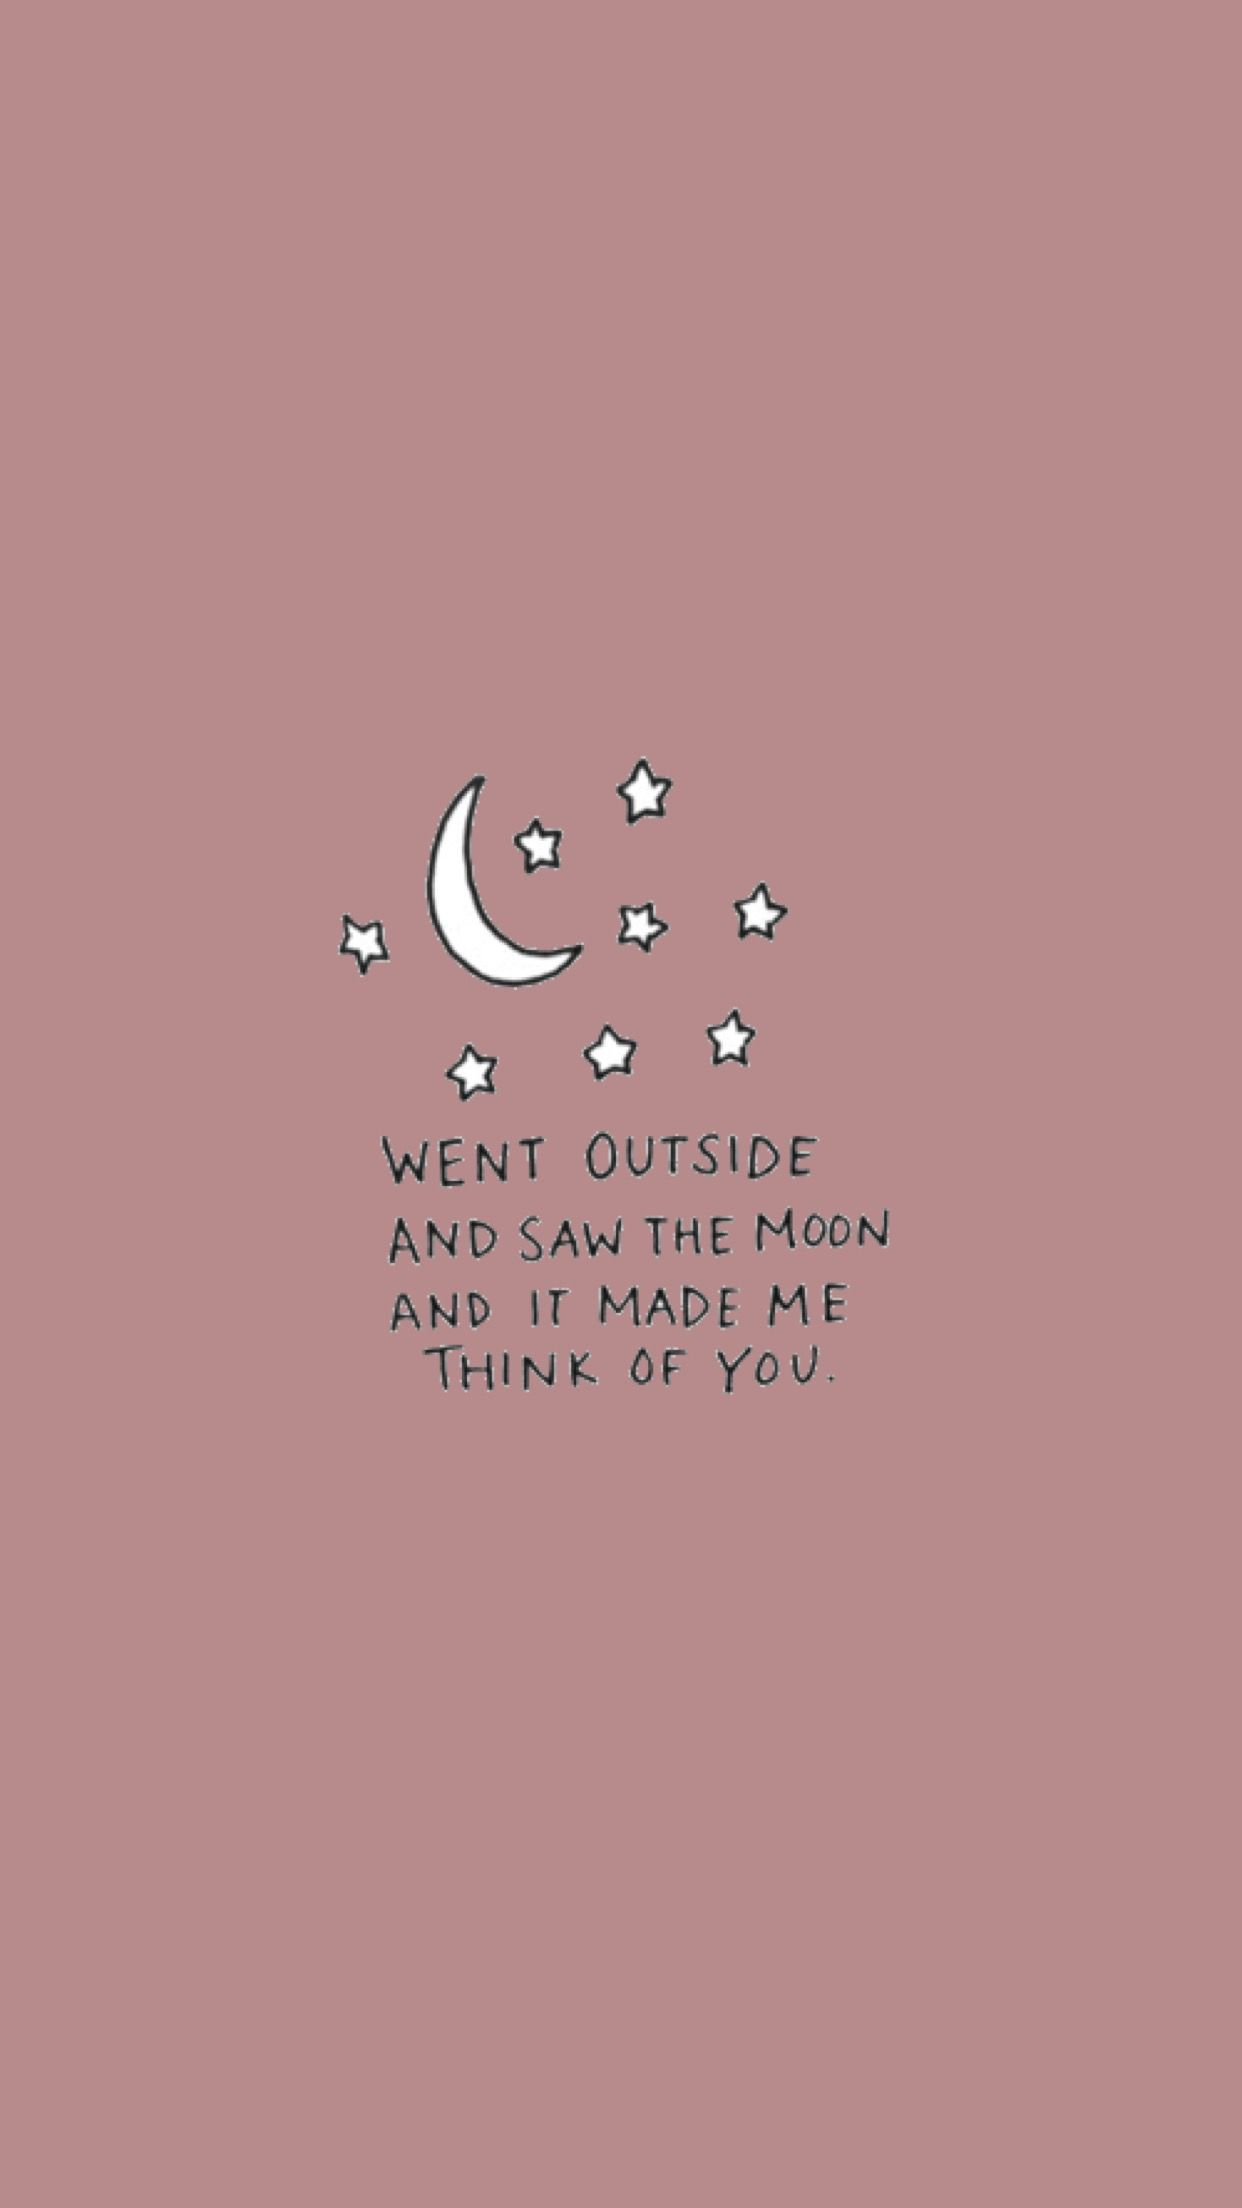 Love Wallpapers Instagram : You-Moon wallpaper made by Laurette instagram ...